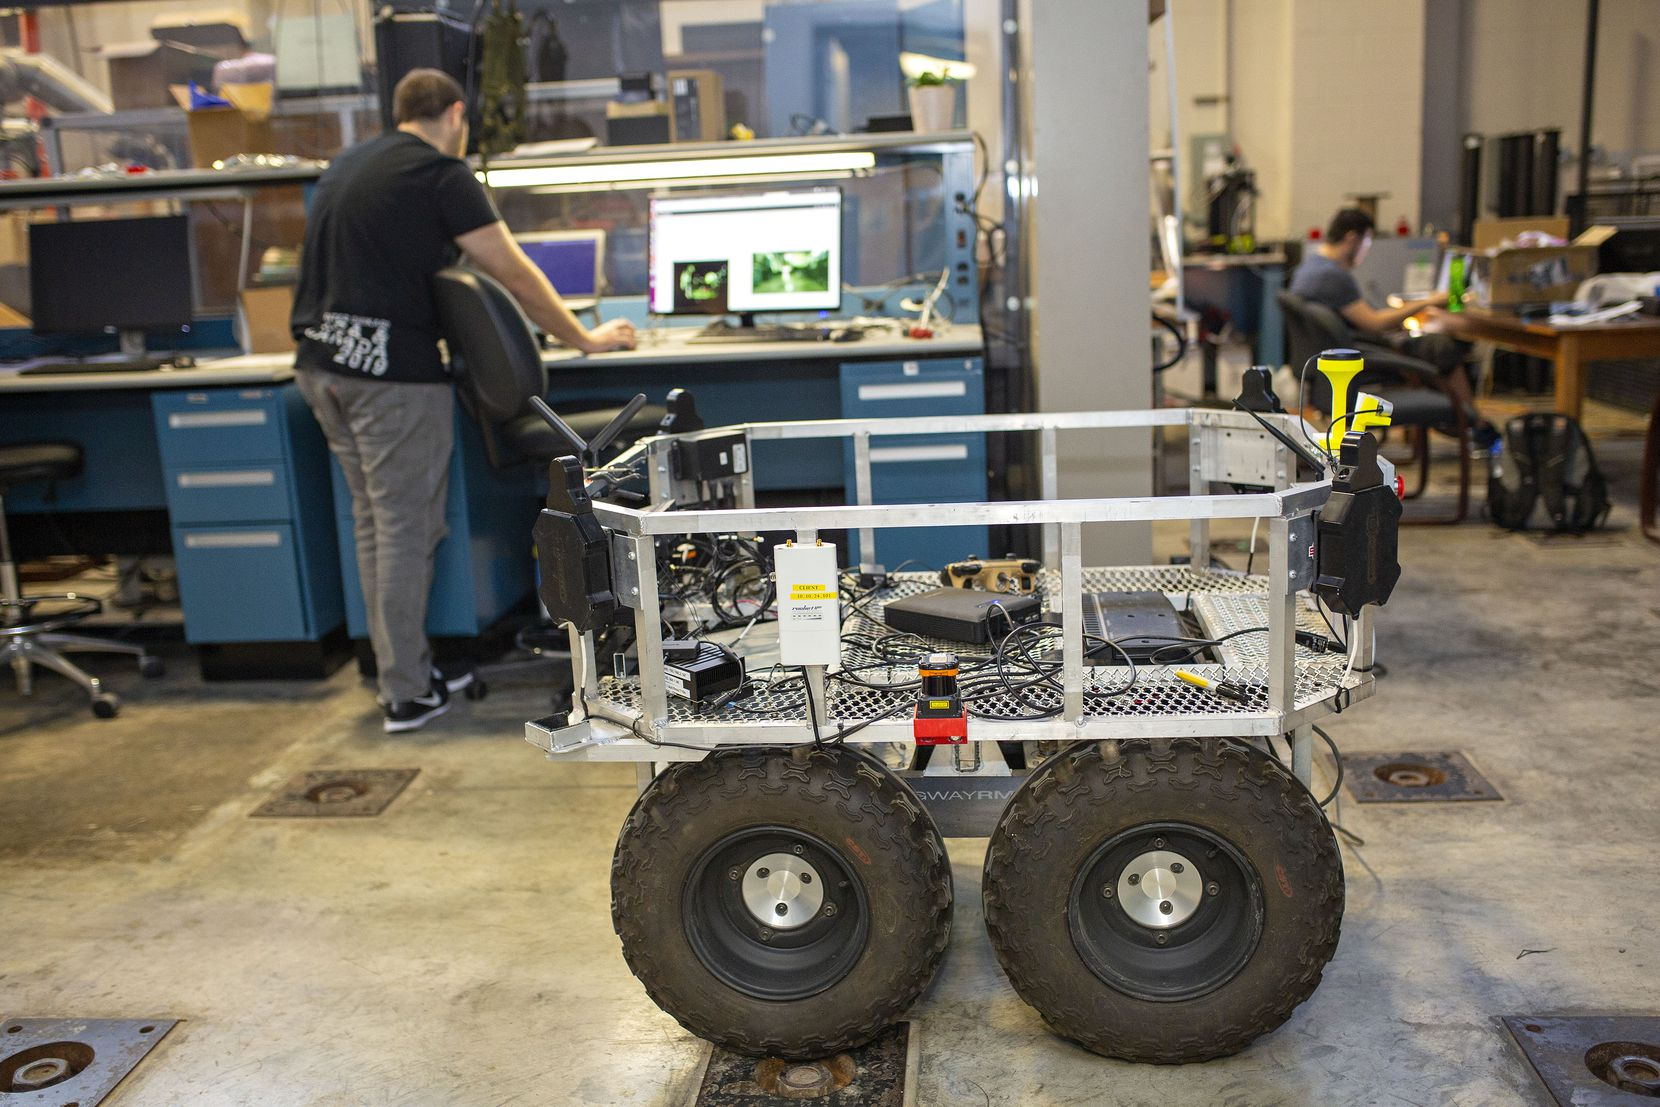 The Army Futures Command branch of the US Army sent a vehicle to the Nuclear and Applied Robotics Group lab at the University of Texas at Austin for the team to work on and develop it into a semi autonomous vehicle that will be able to help transport solider equipment  and do other dangerous tasks that are currently being performed by a person on October 8, 2019 in Austin, Texas. (Thao Nguyen/Special Contributor)